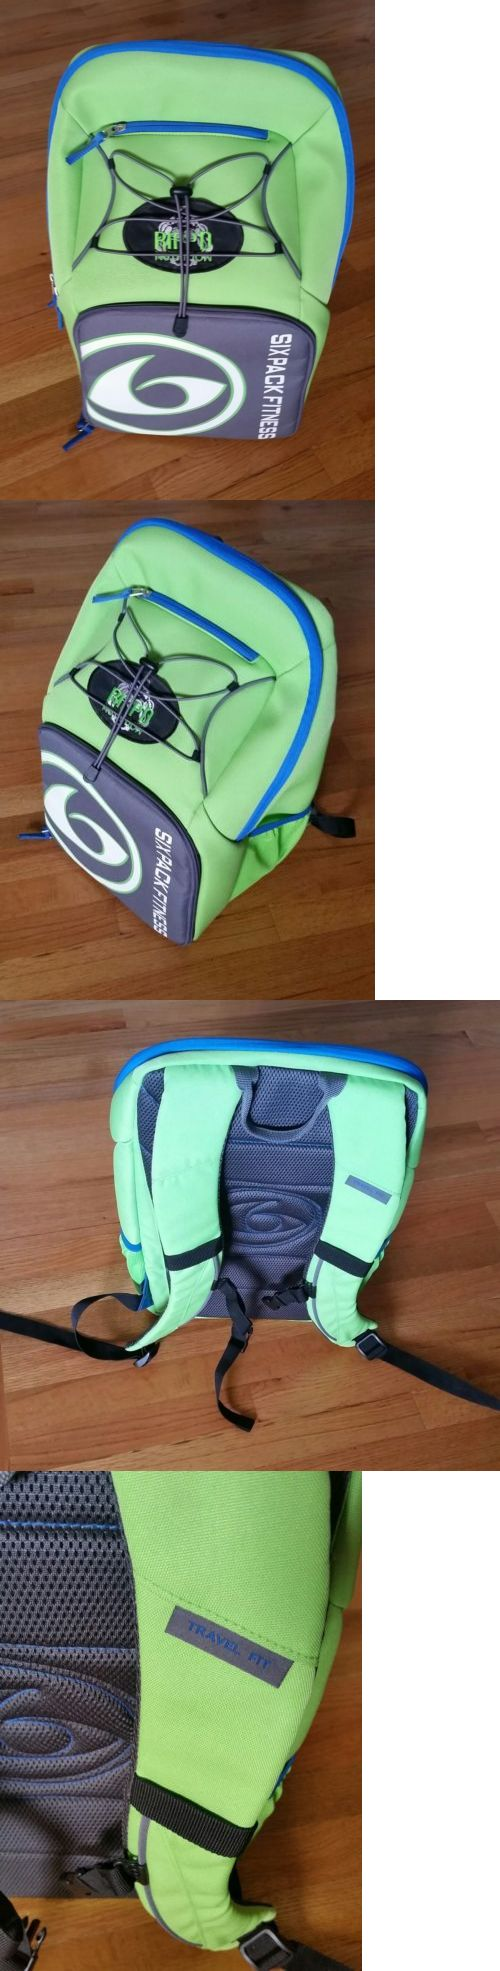 Gym Bags 68816: Six Pack Fitness Backpack Travel Fit Bag Meal Management -> BUY IT NOW ONLY: $99.95 on eBay!